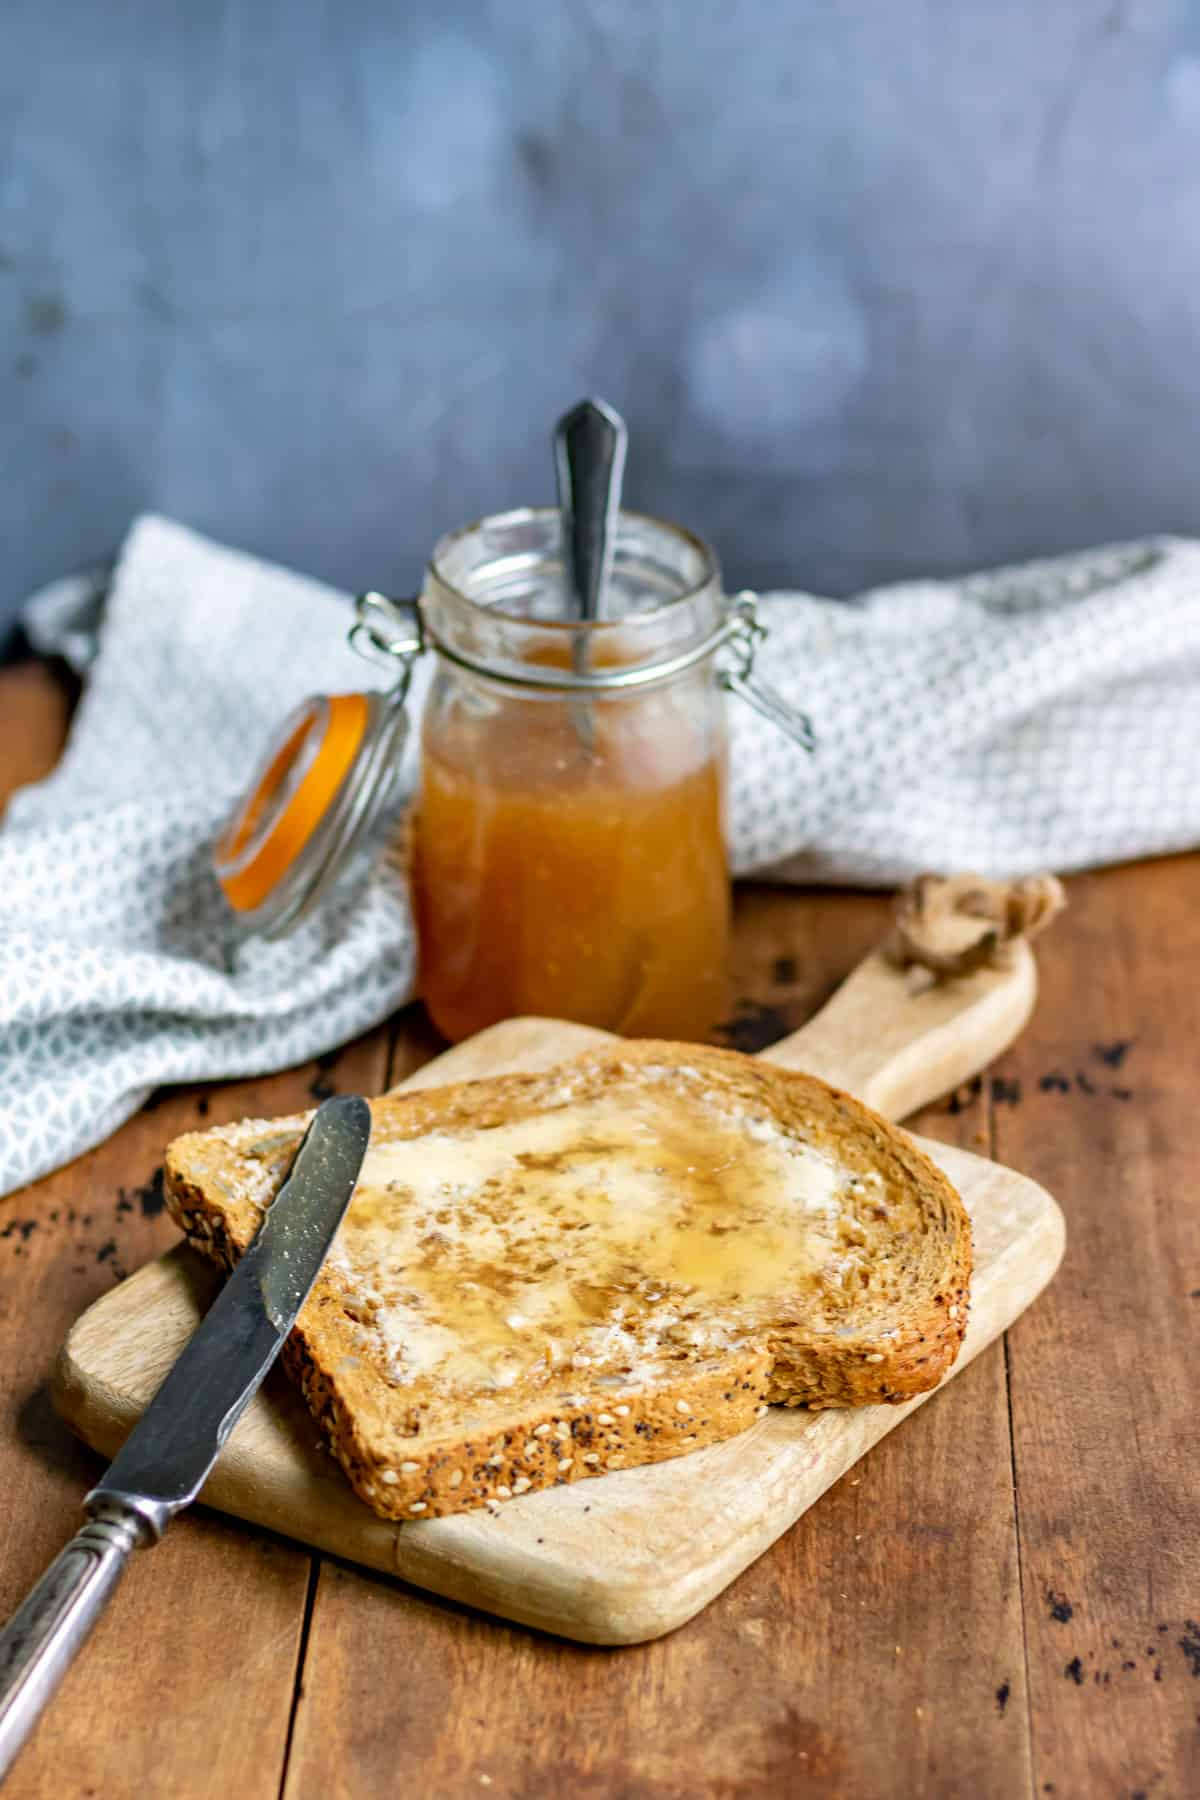 Table with toast spread with vegan honey.